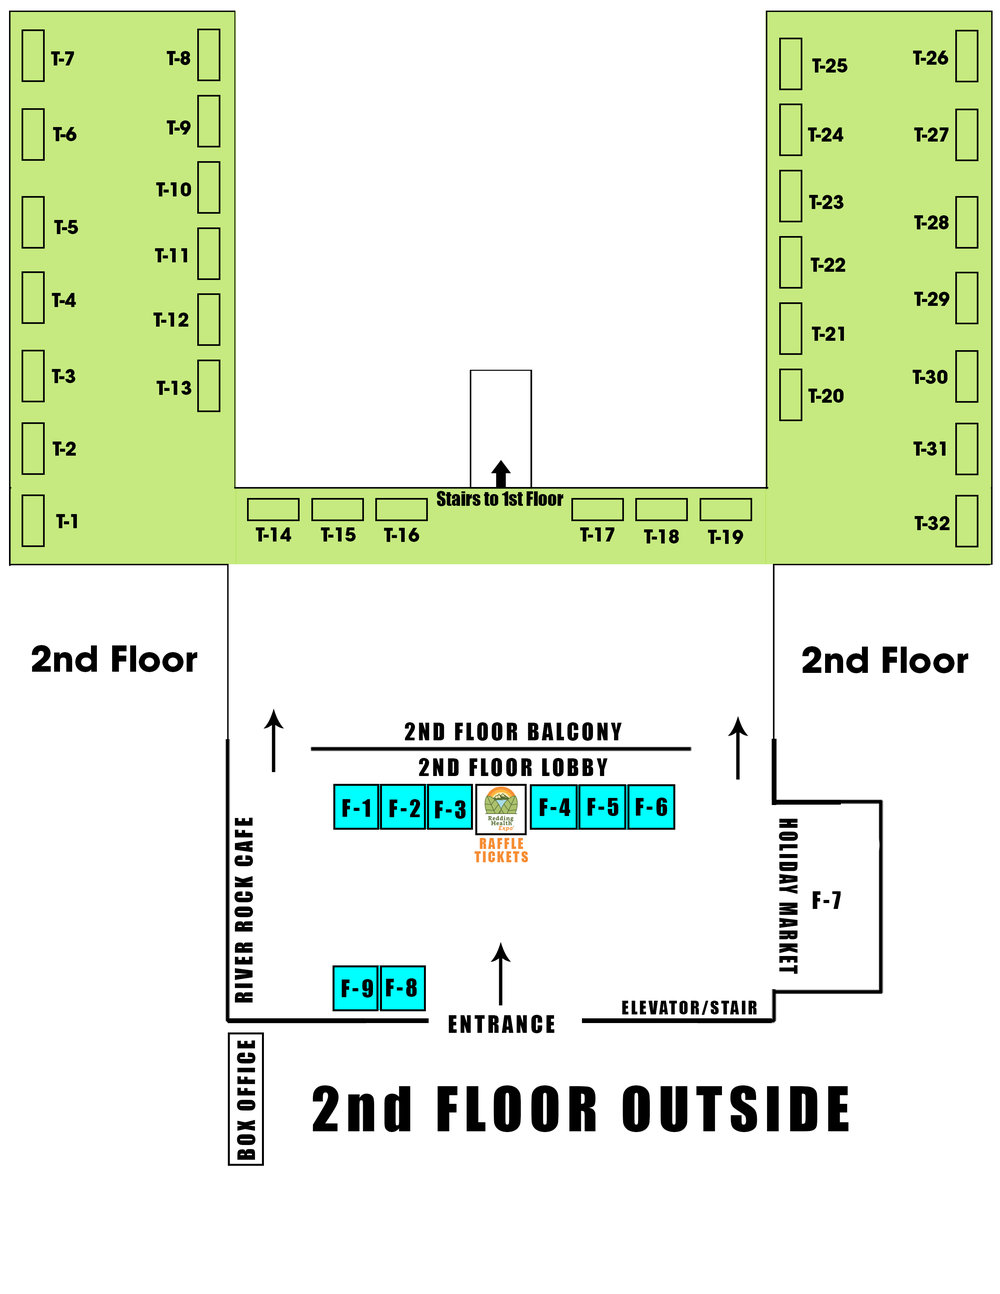 Redding Civic Auditorium 2nd Floor | Redding Health Expo